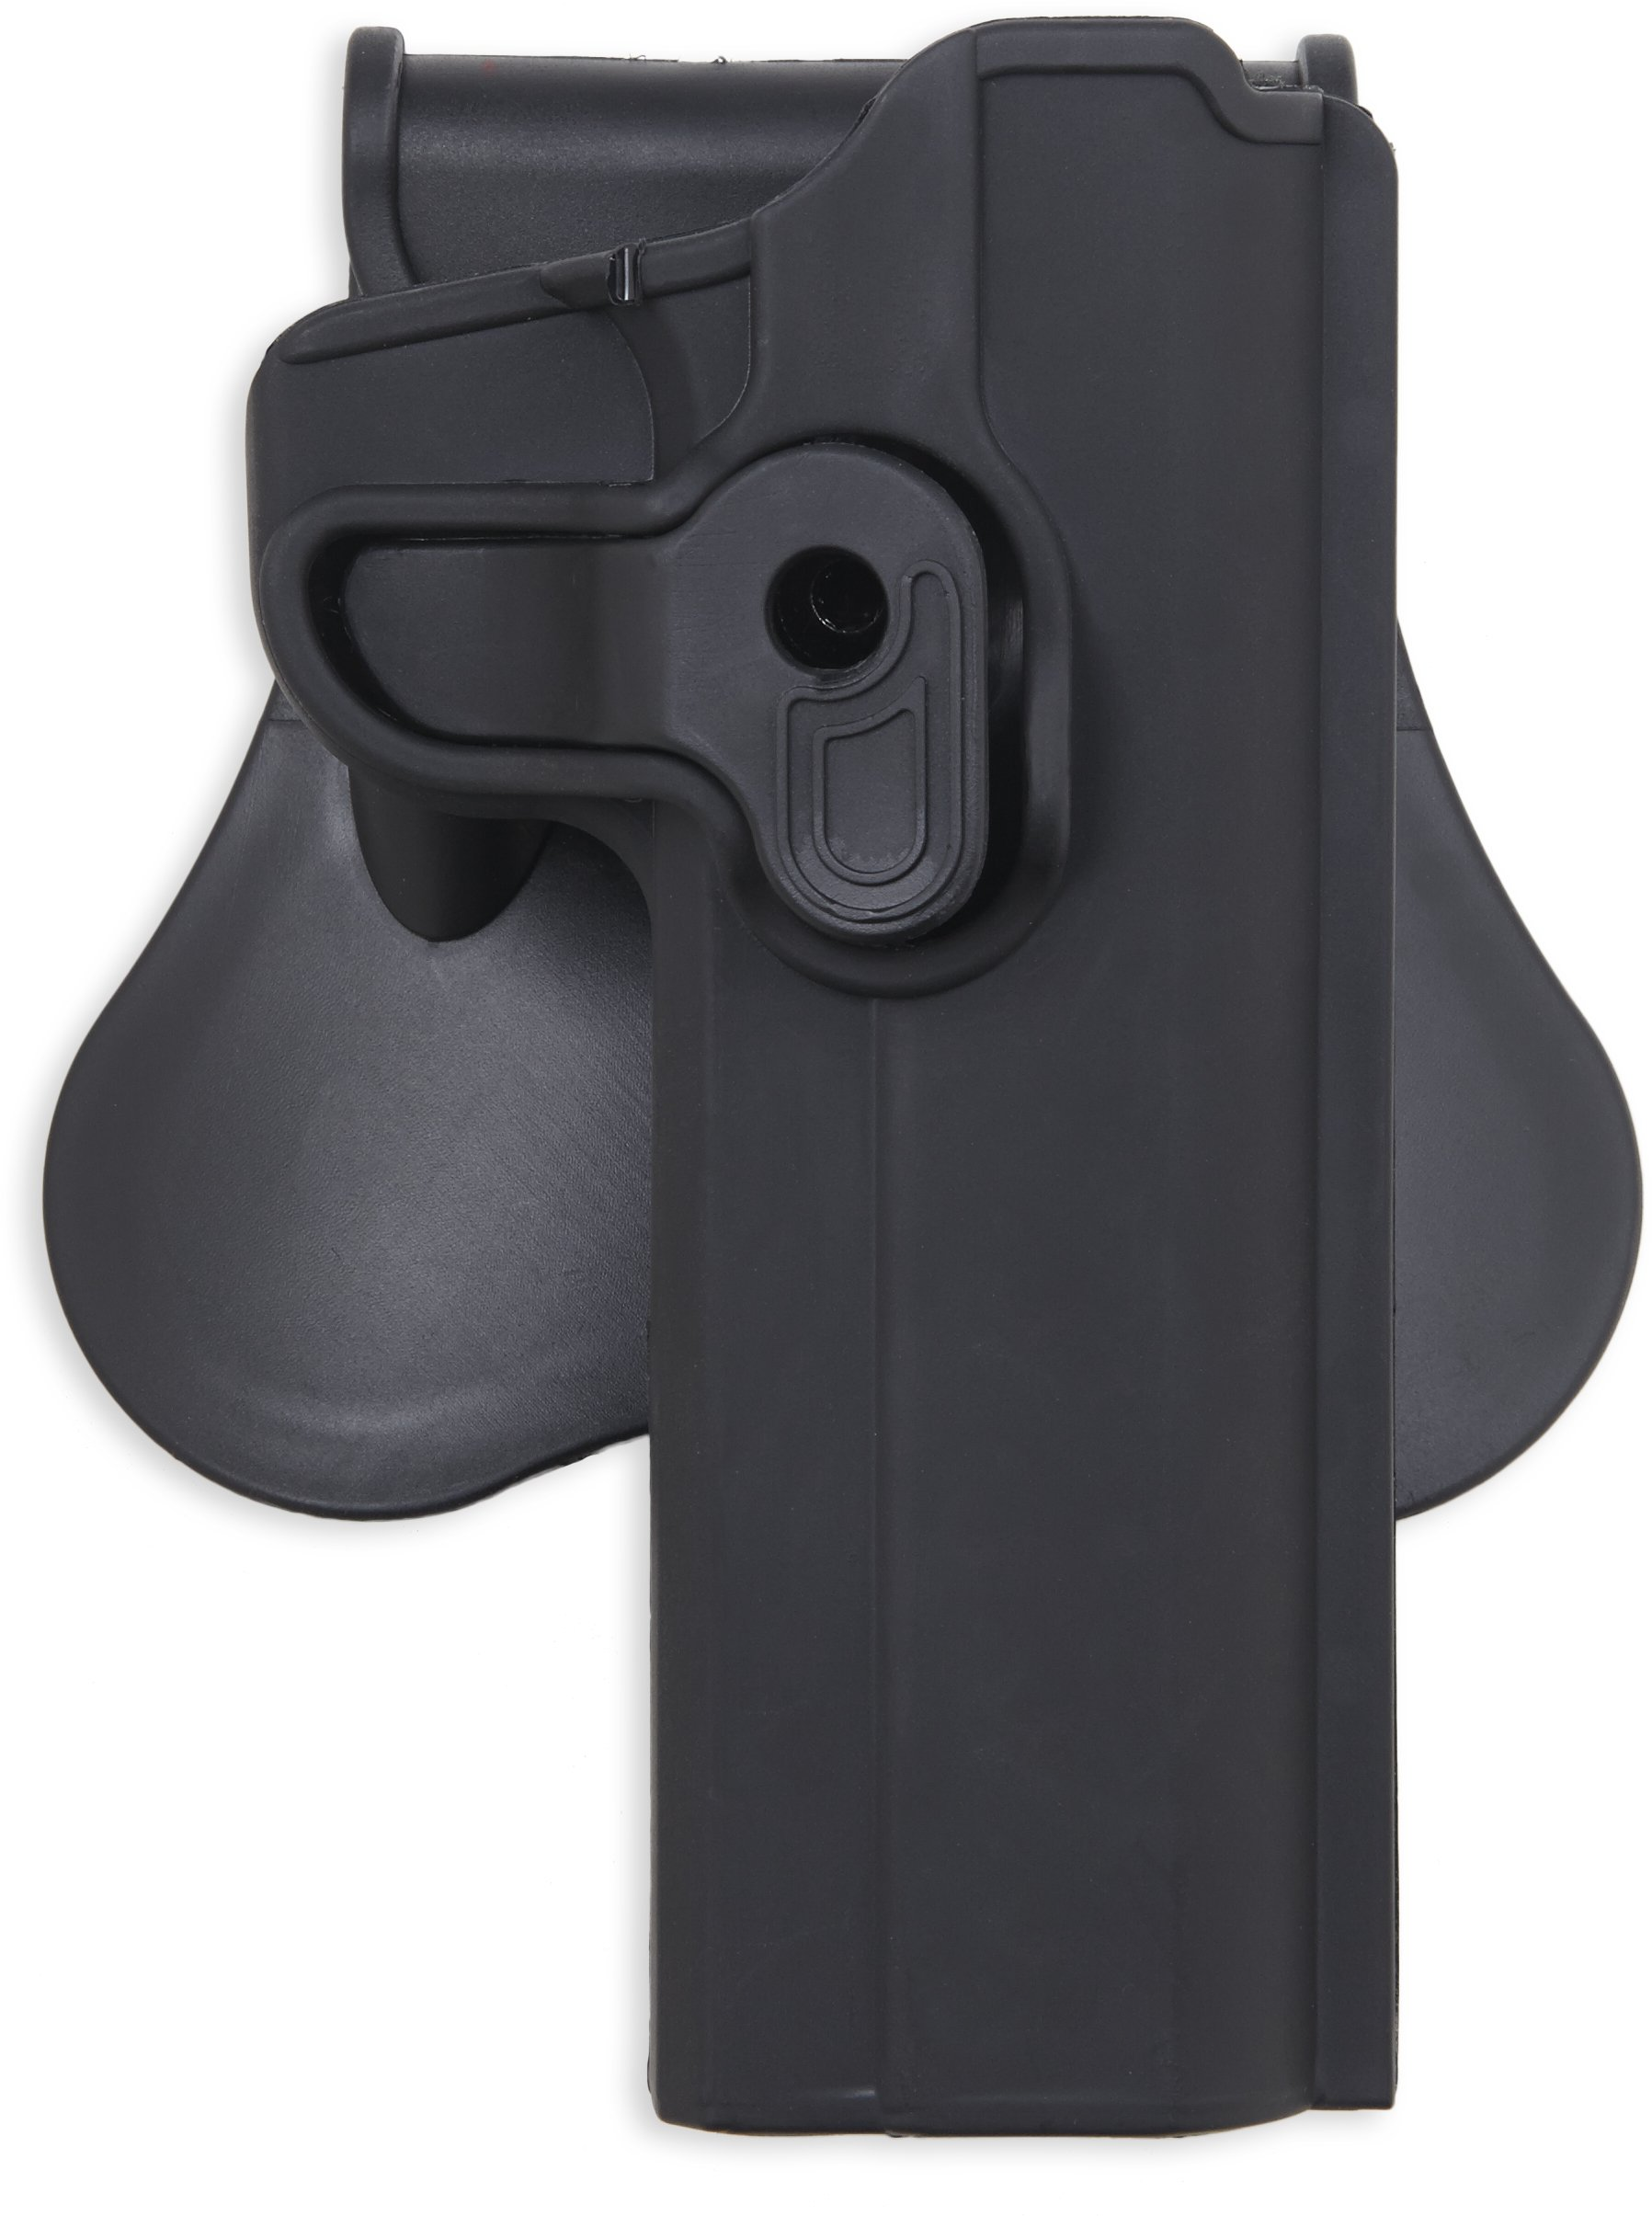 Bulldog Cases Rapid Release Polymer Holster (Fits S&W J Frame with 2'' Barrels), Black by Bulldog Cases